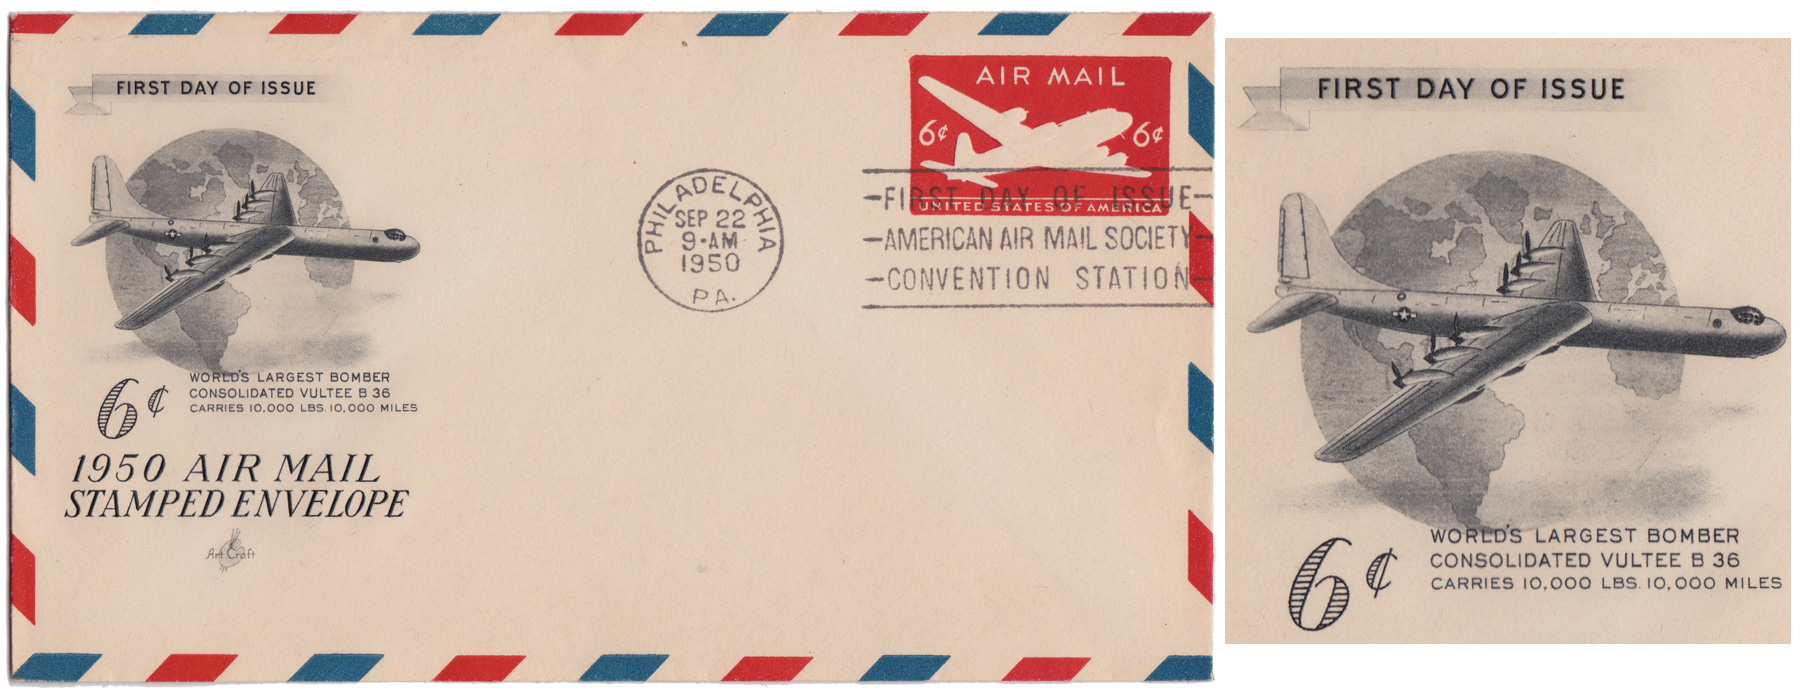 U.S. Postal Service - First Day Cover: Six Cent Air Mail Cachet Art by: ArtCraft Cachet Art: Consolidated Vultee B-36 First Day Issue: Philadelphia / September 22, 1950